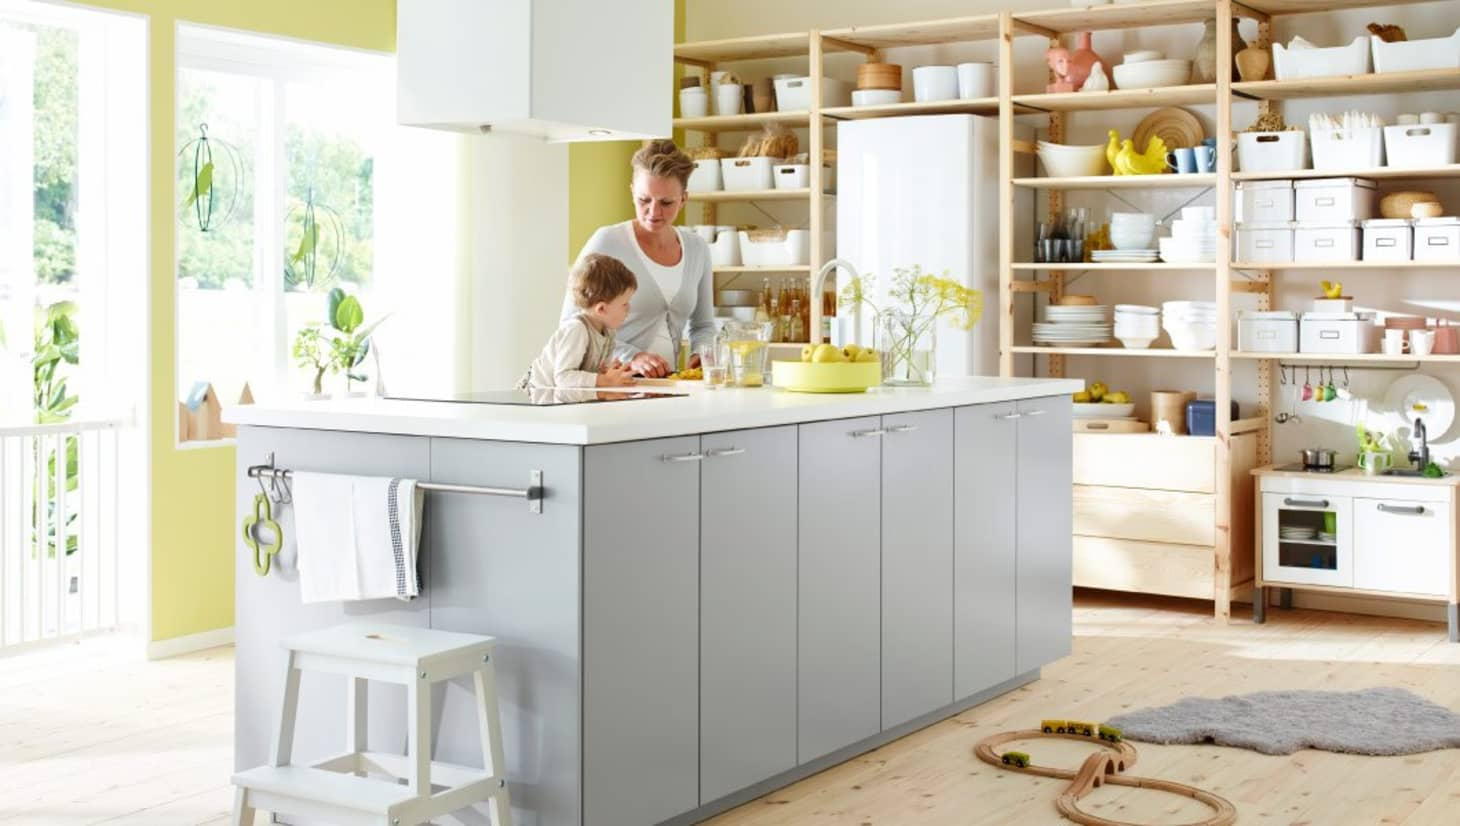 IKEA Is Totally Changing Their Kitchen Cabinet System  Here's What